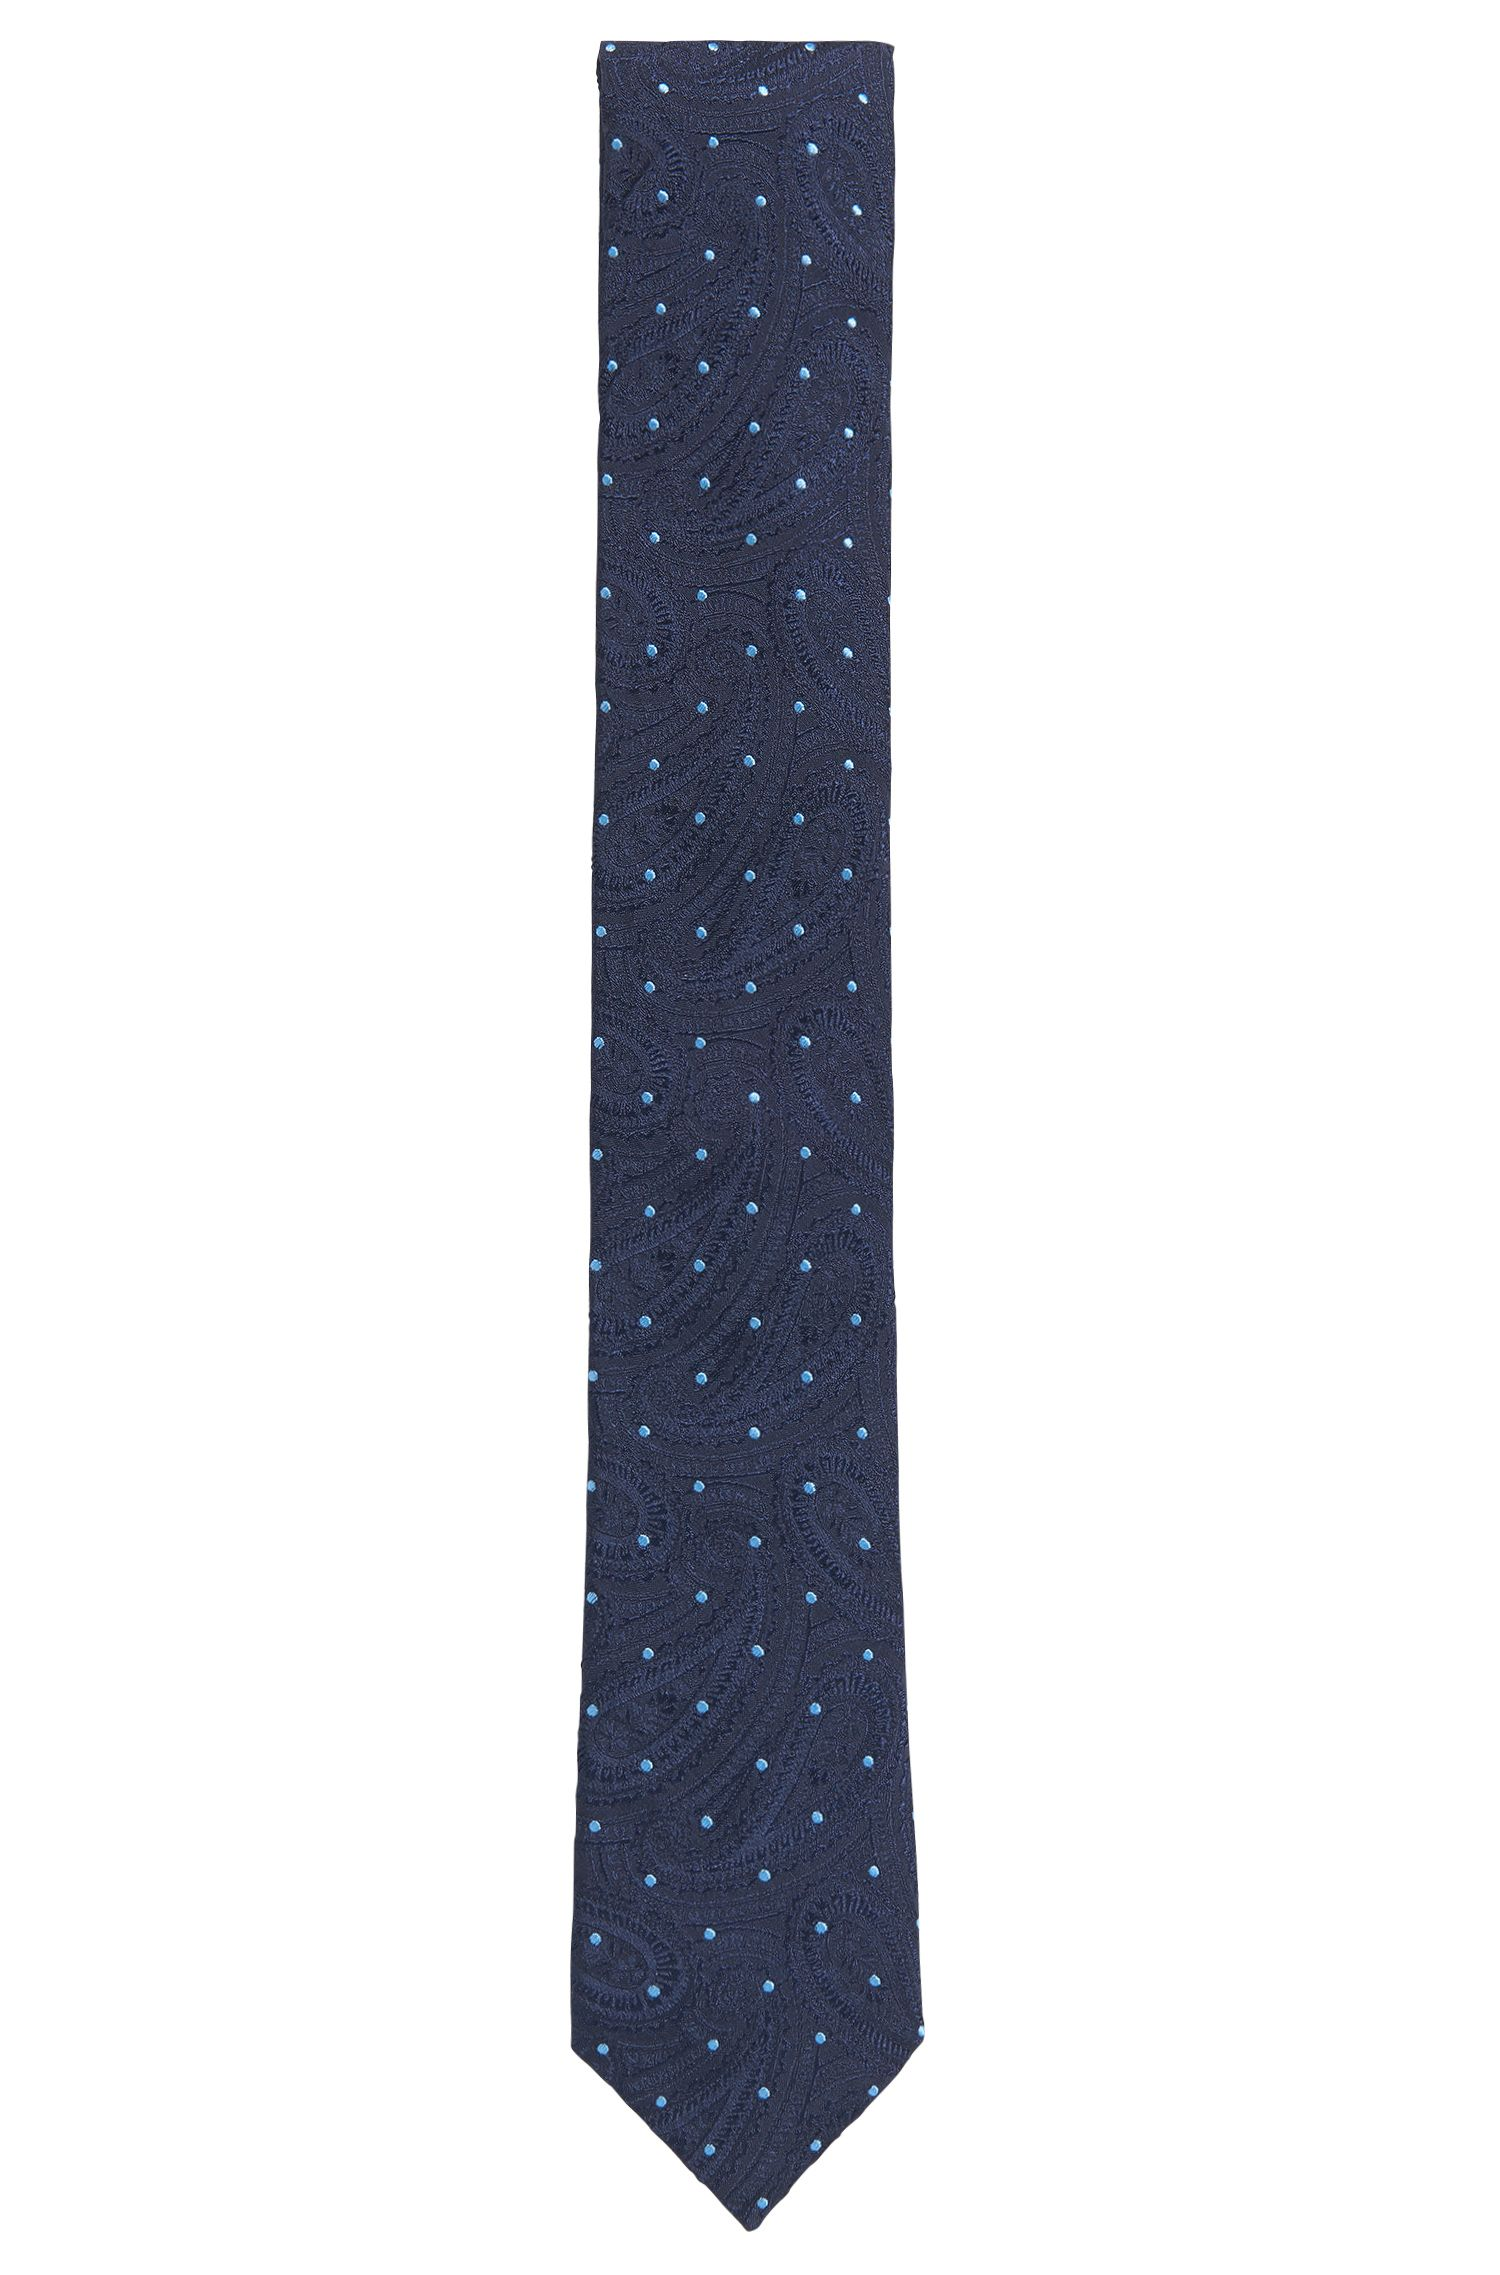 Silk-jacquard patterned tie made in Italy